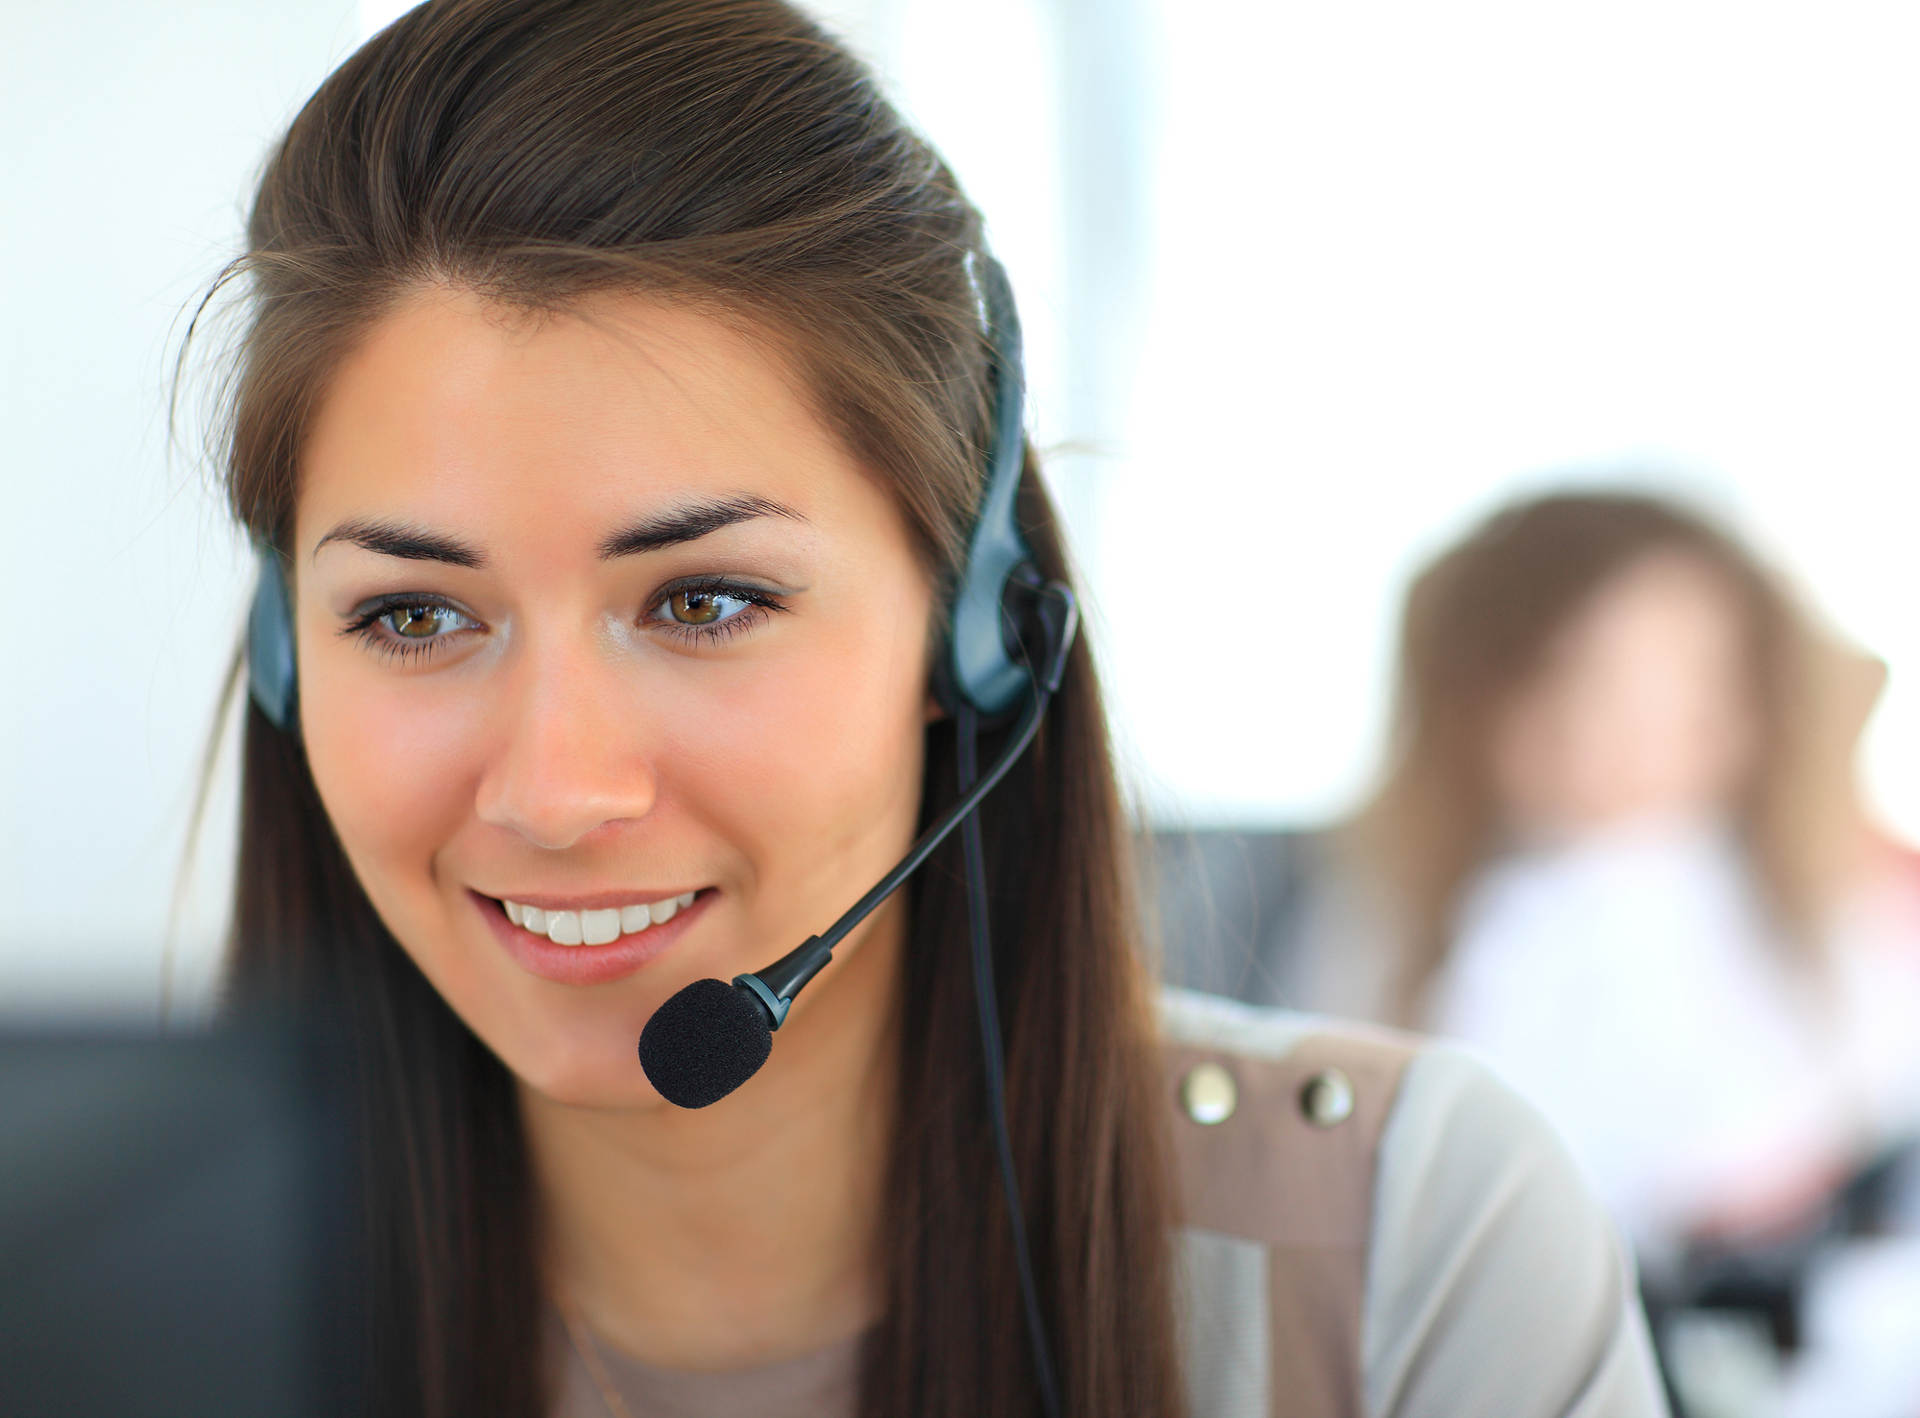 15 Tips to Help Resolve a Customer Problem with the First Call [Infographic]